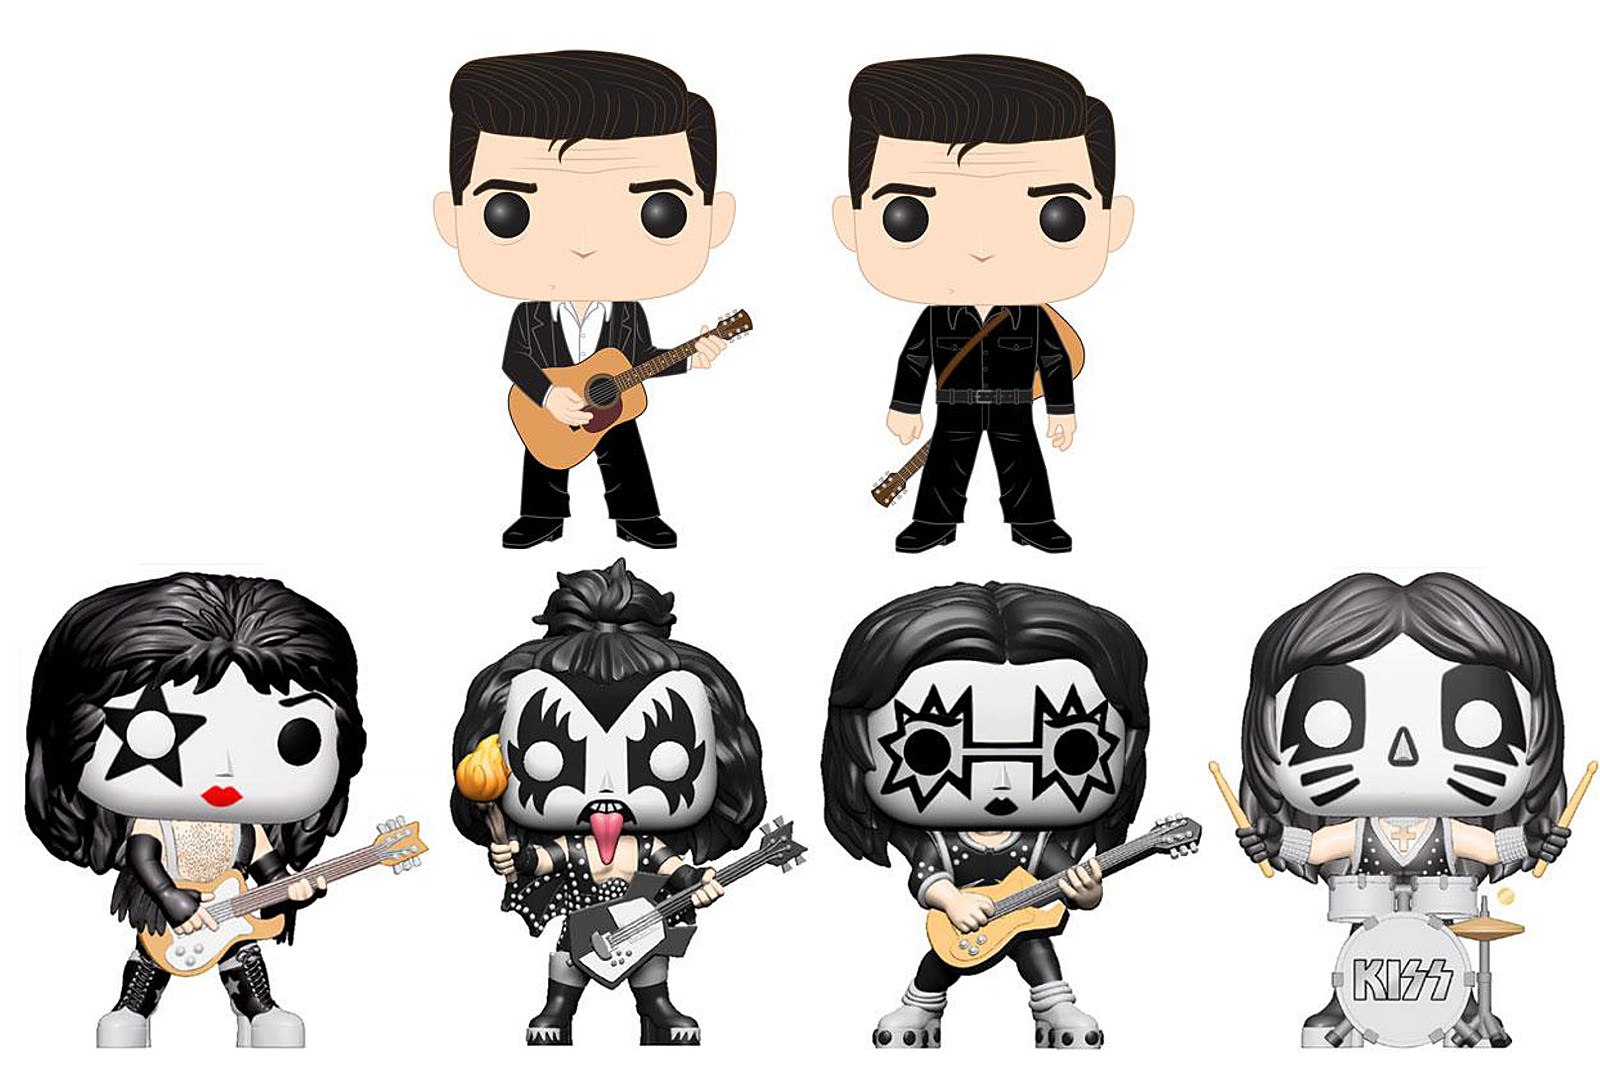 Kiss and Johnny Cash Immortalized in New Funko Pop! Figures